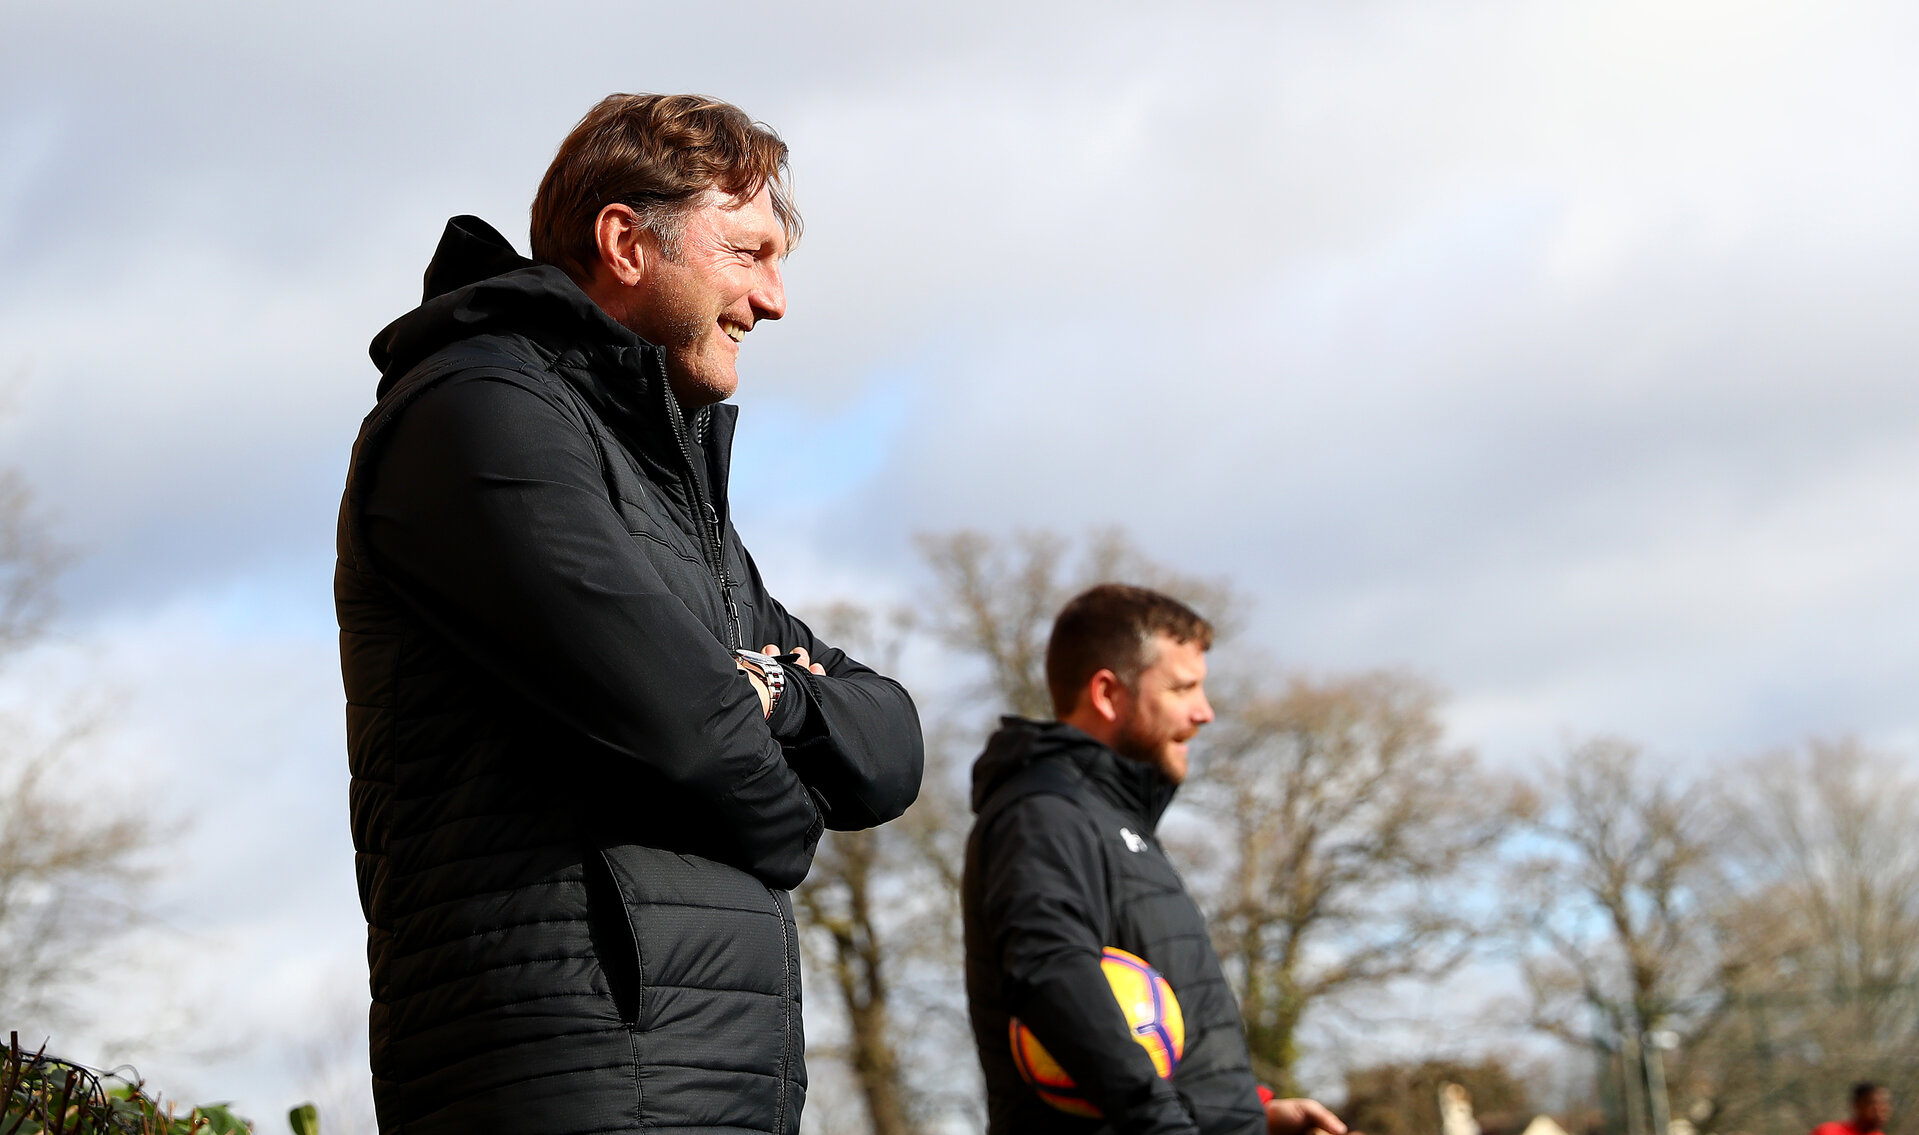 SOUTHAMPTON, ENGLAND - FEBRUARY 07: Ralph Hasenhuttl during a Southampton FC training session at the Staplewood Campus on February 07, 2019 in Southampton, England. (Photo by Matt Watson/Southampton FC via Getty Images)